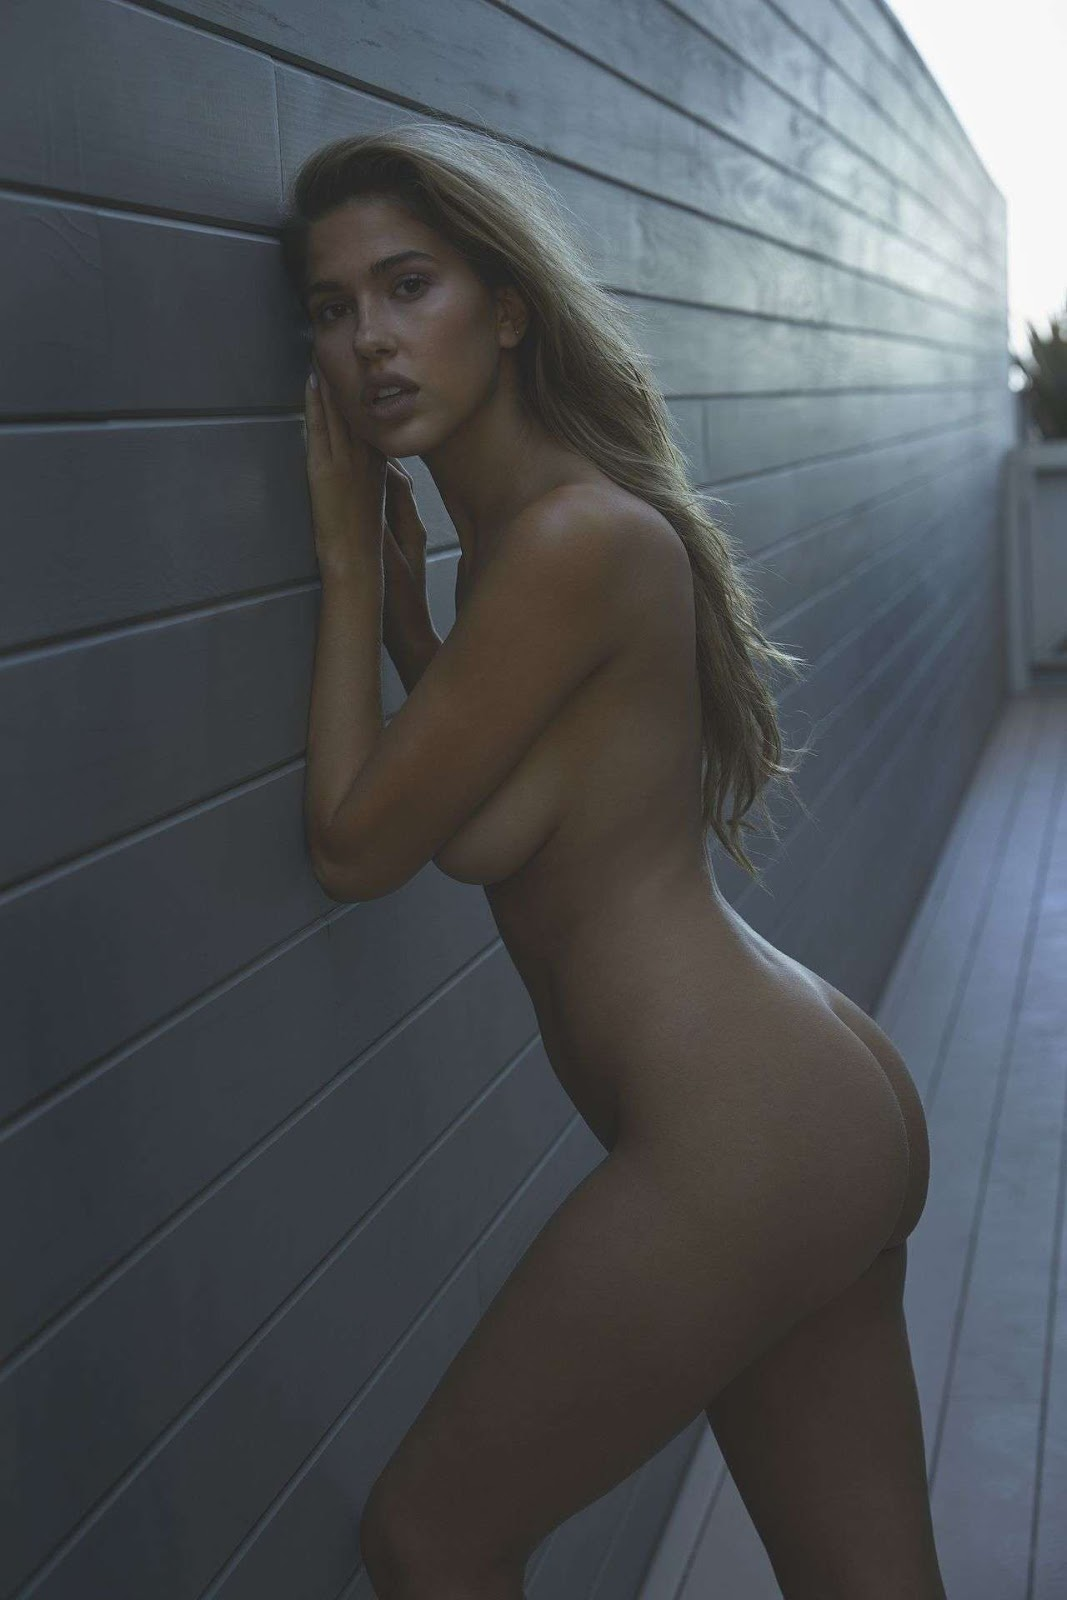 Kara Del Toro for Maxim Magazine Photoshoot by James Macari